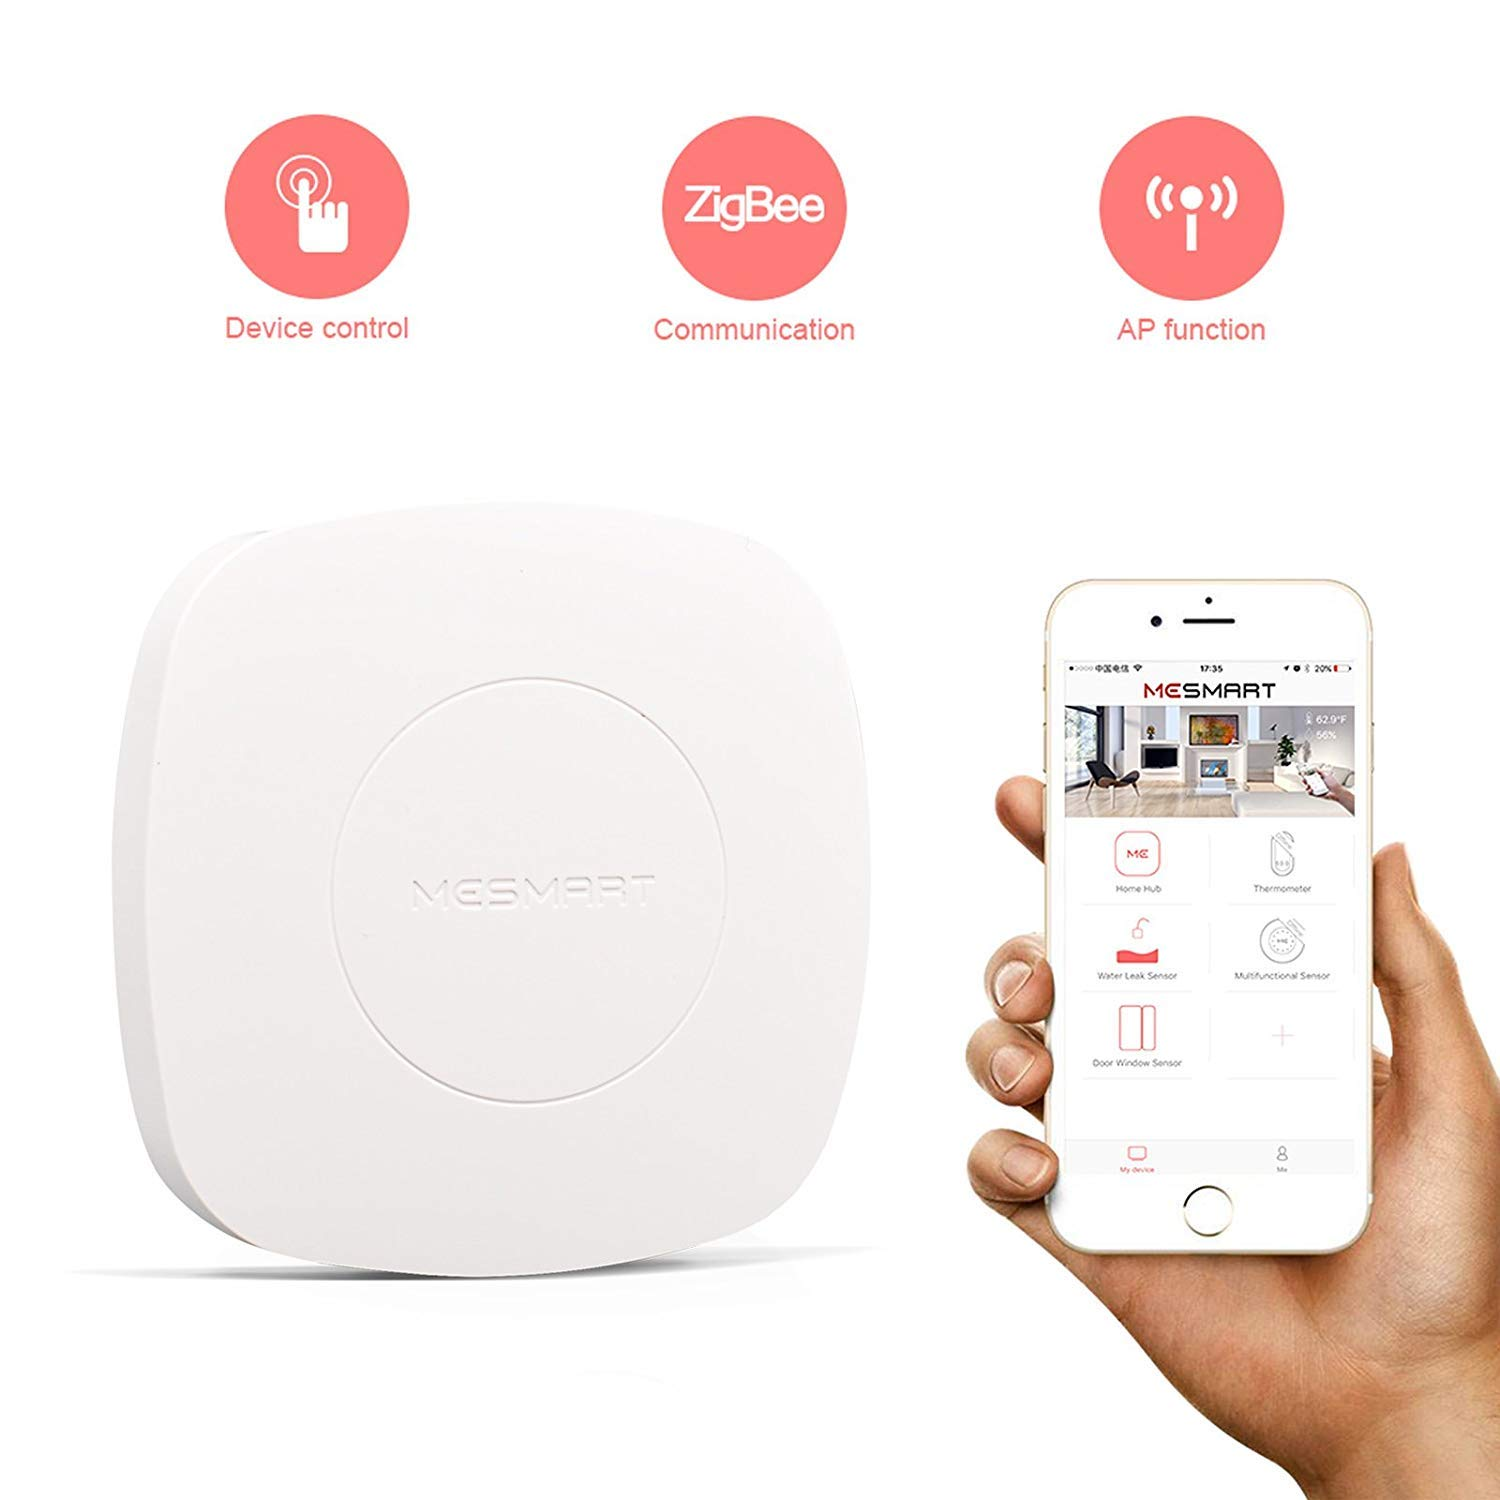 MESMART Wireless Connected Smart Home Hub Controller Secuirty Automation System Brain Center Zigbee Compatible with Amazon Alexa by MESMART (Image #2)